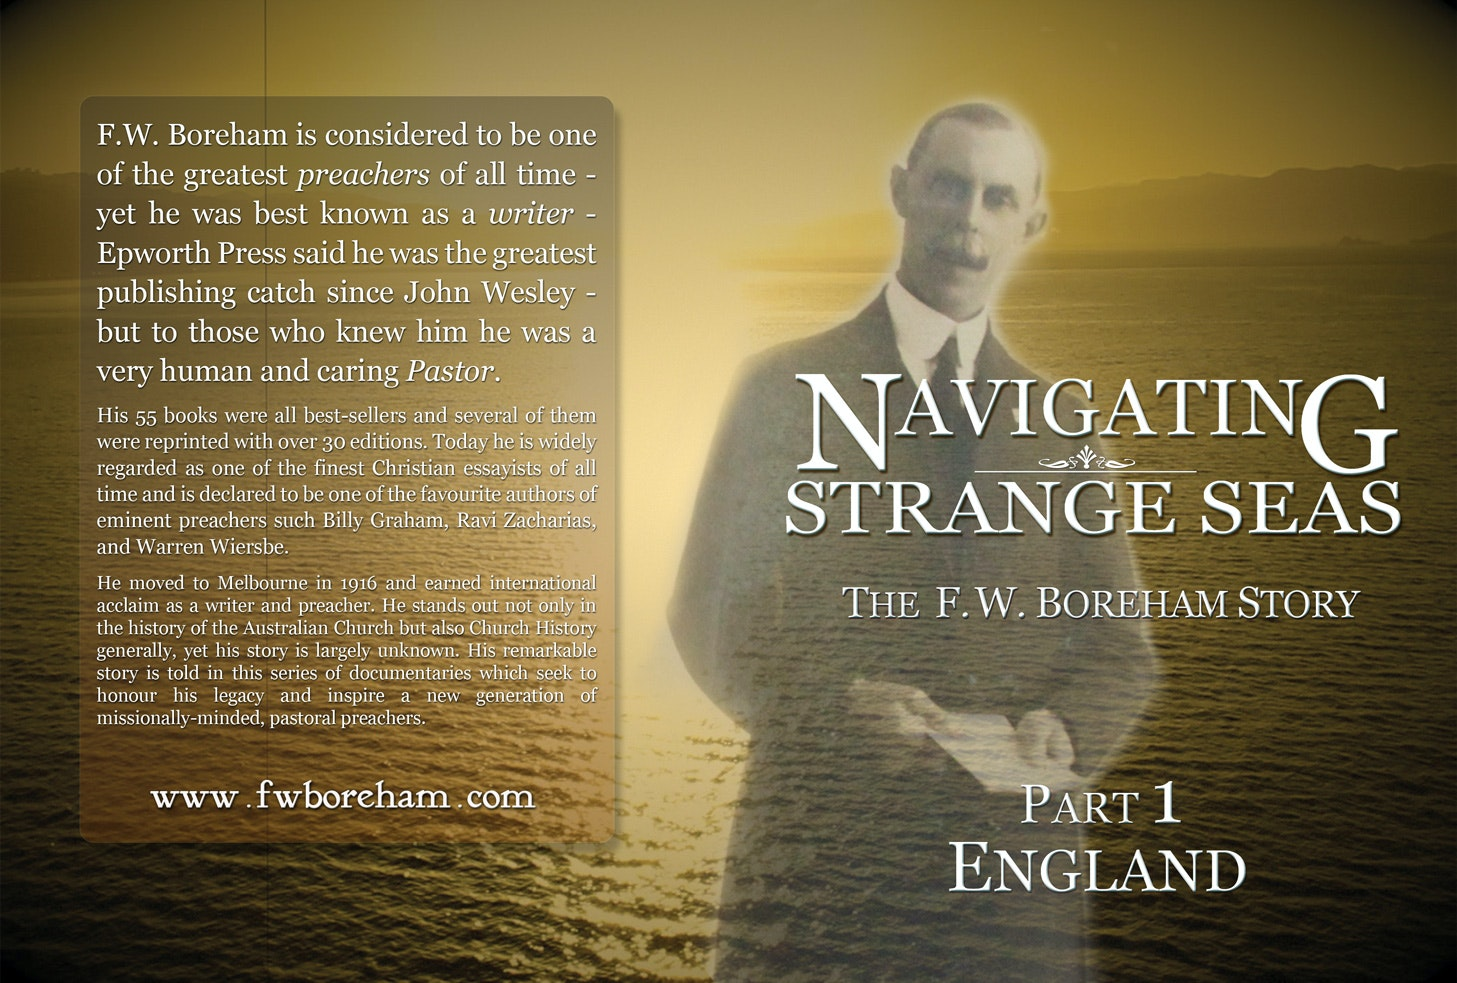 NAVIGATING STRANGE SEAS, The Dr. F. W. Boreham Story, Episode 1, England